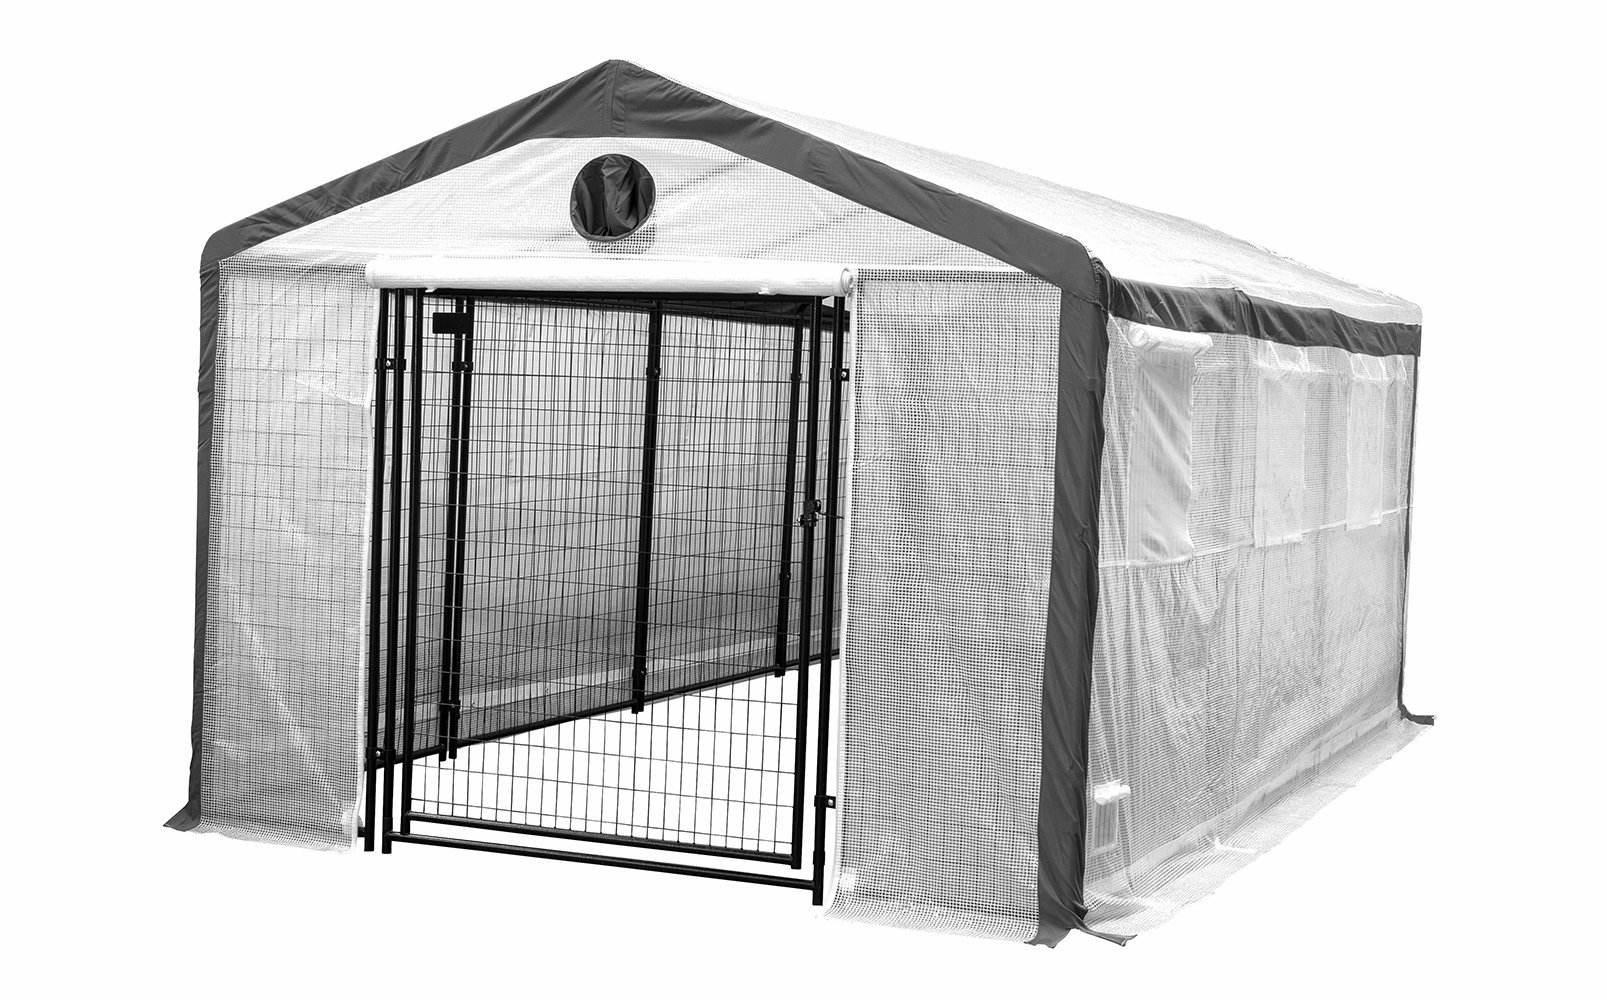 Greenhouse for Home Growers and Horticulturists - Weatherguard Secure Peak Roof Garden Hot House Fully Enclosed - Heavy Duty 6' High Welded Steel Panels and Lockable Gate - Vent ready for adding odor eliminating fan and filtration system. (10'W x 15'L x 8